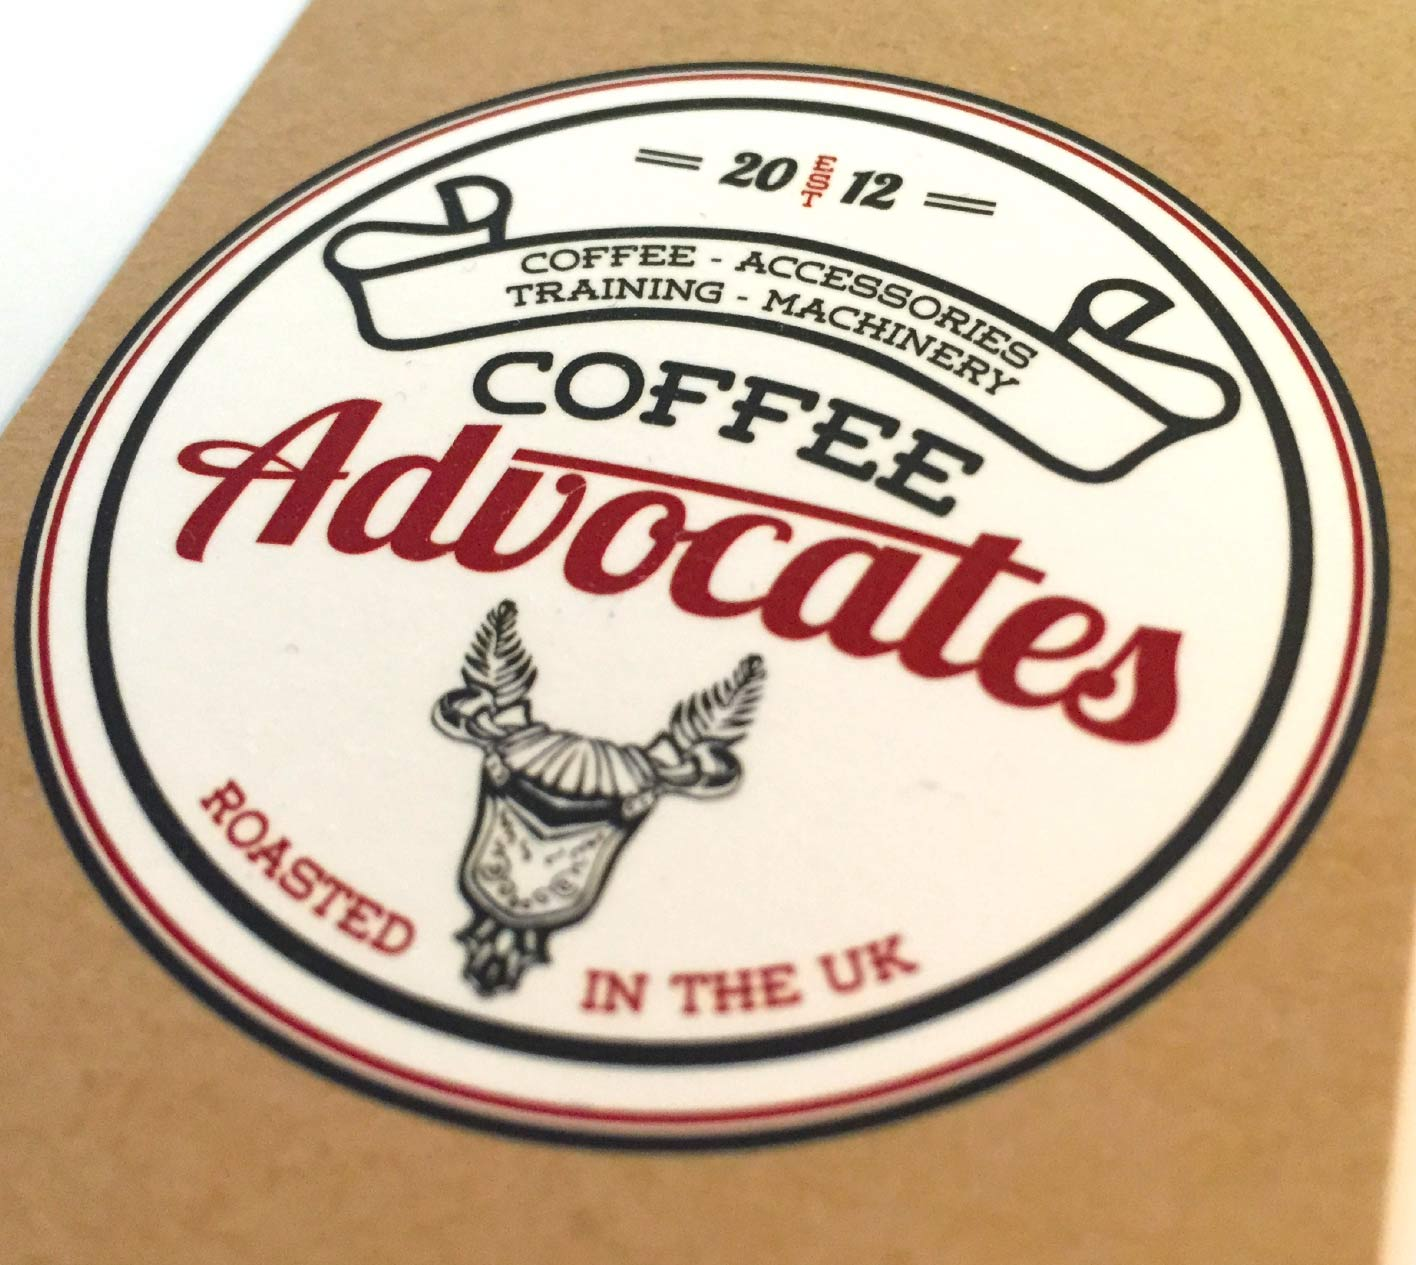 Business card design for Coffee Advocates